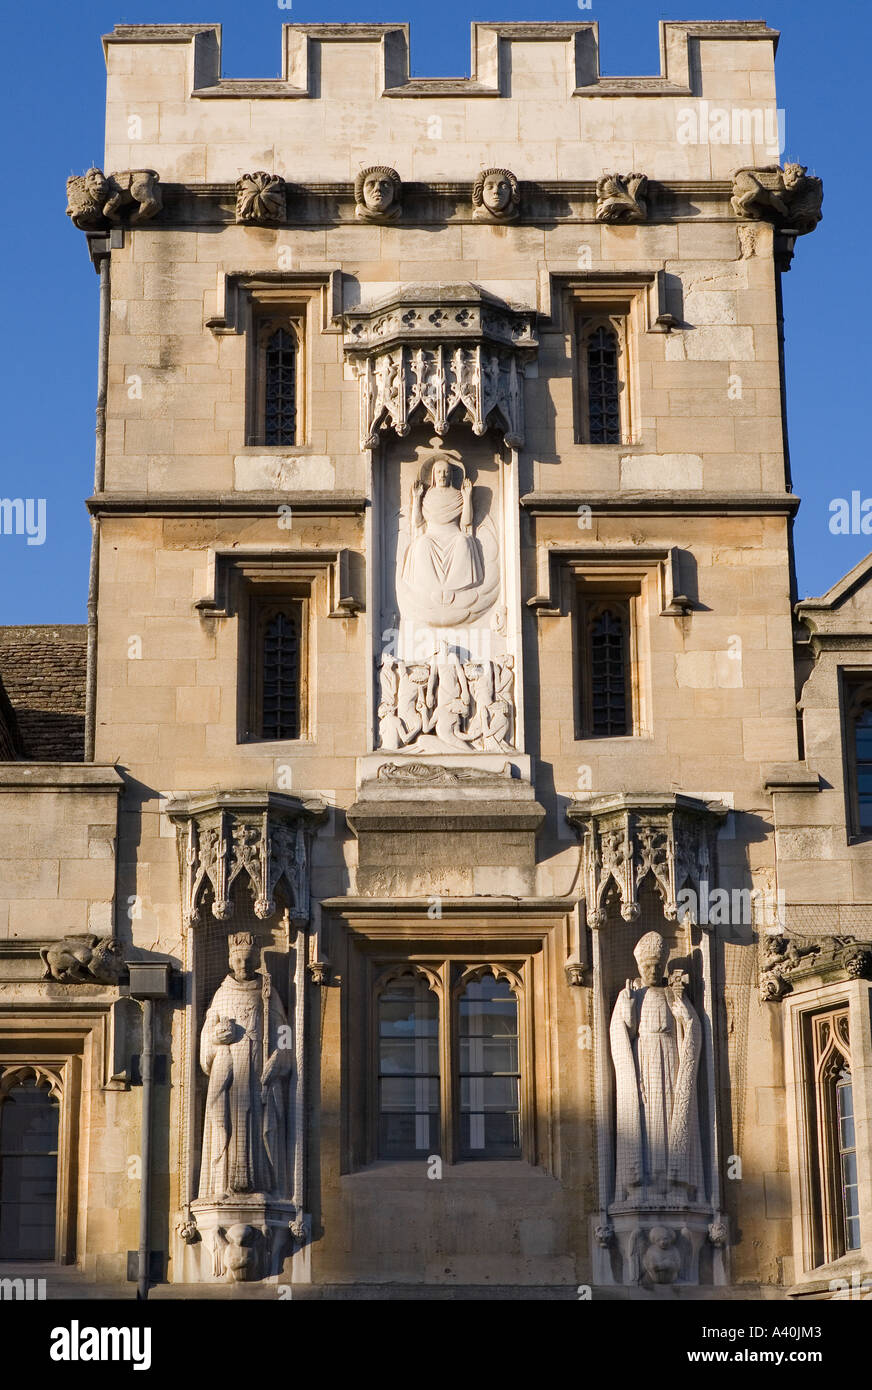 Facade of All Soul's College Oxford 1 - Stock Image